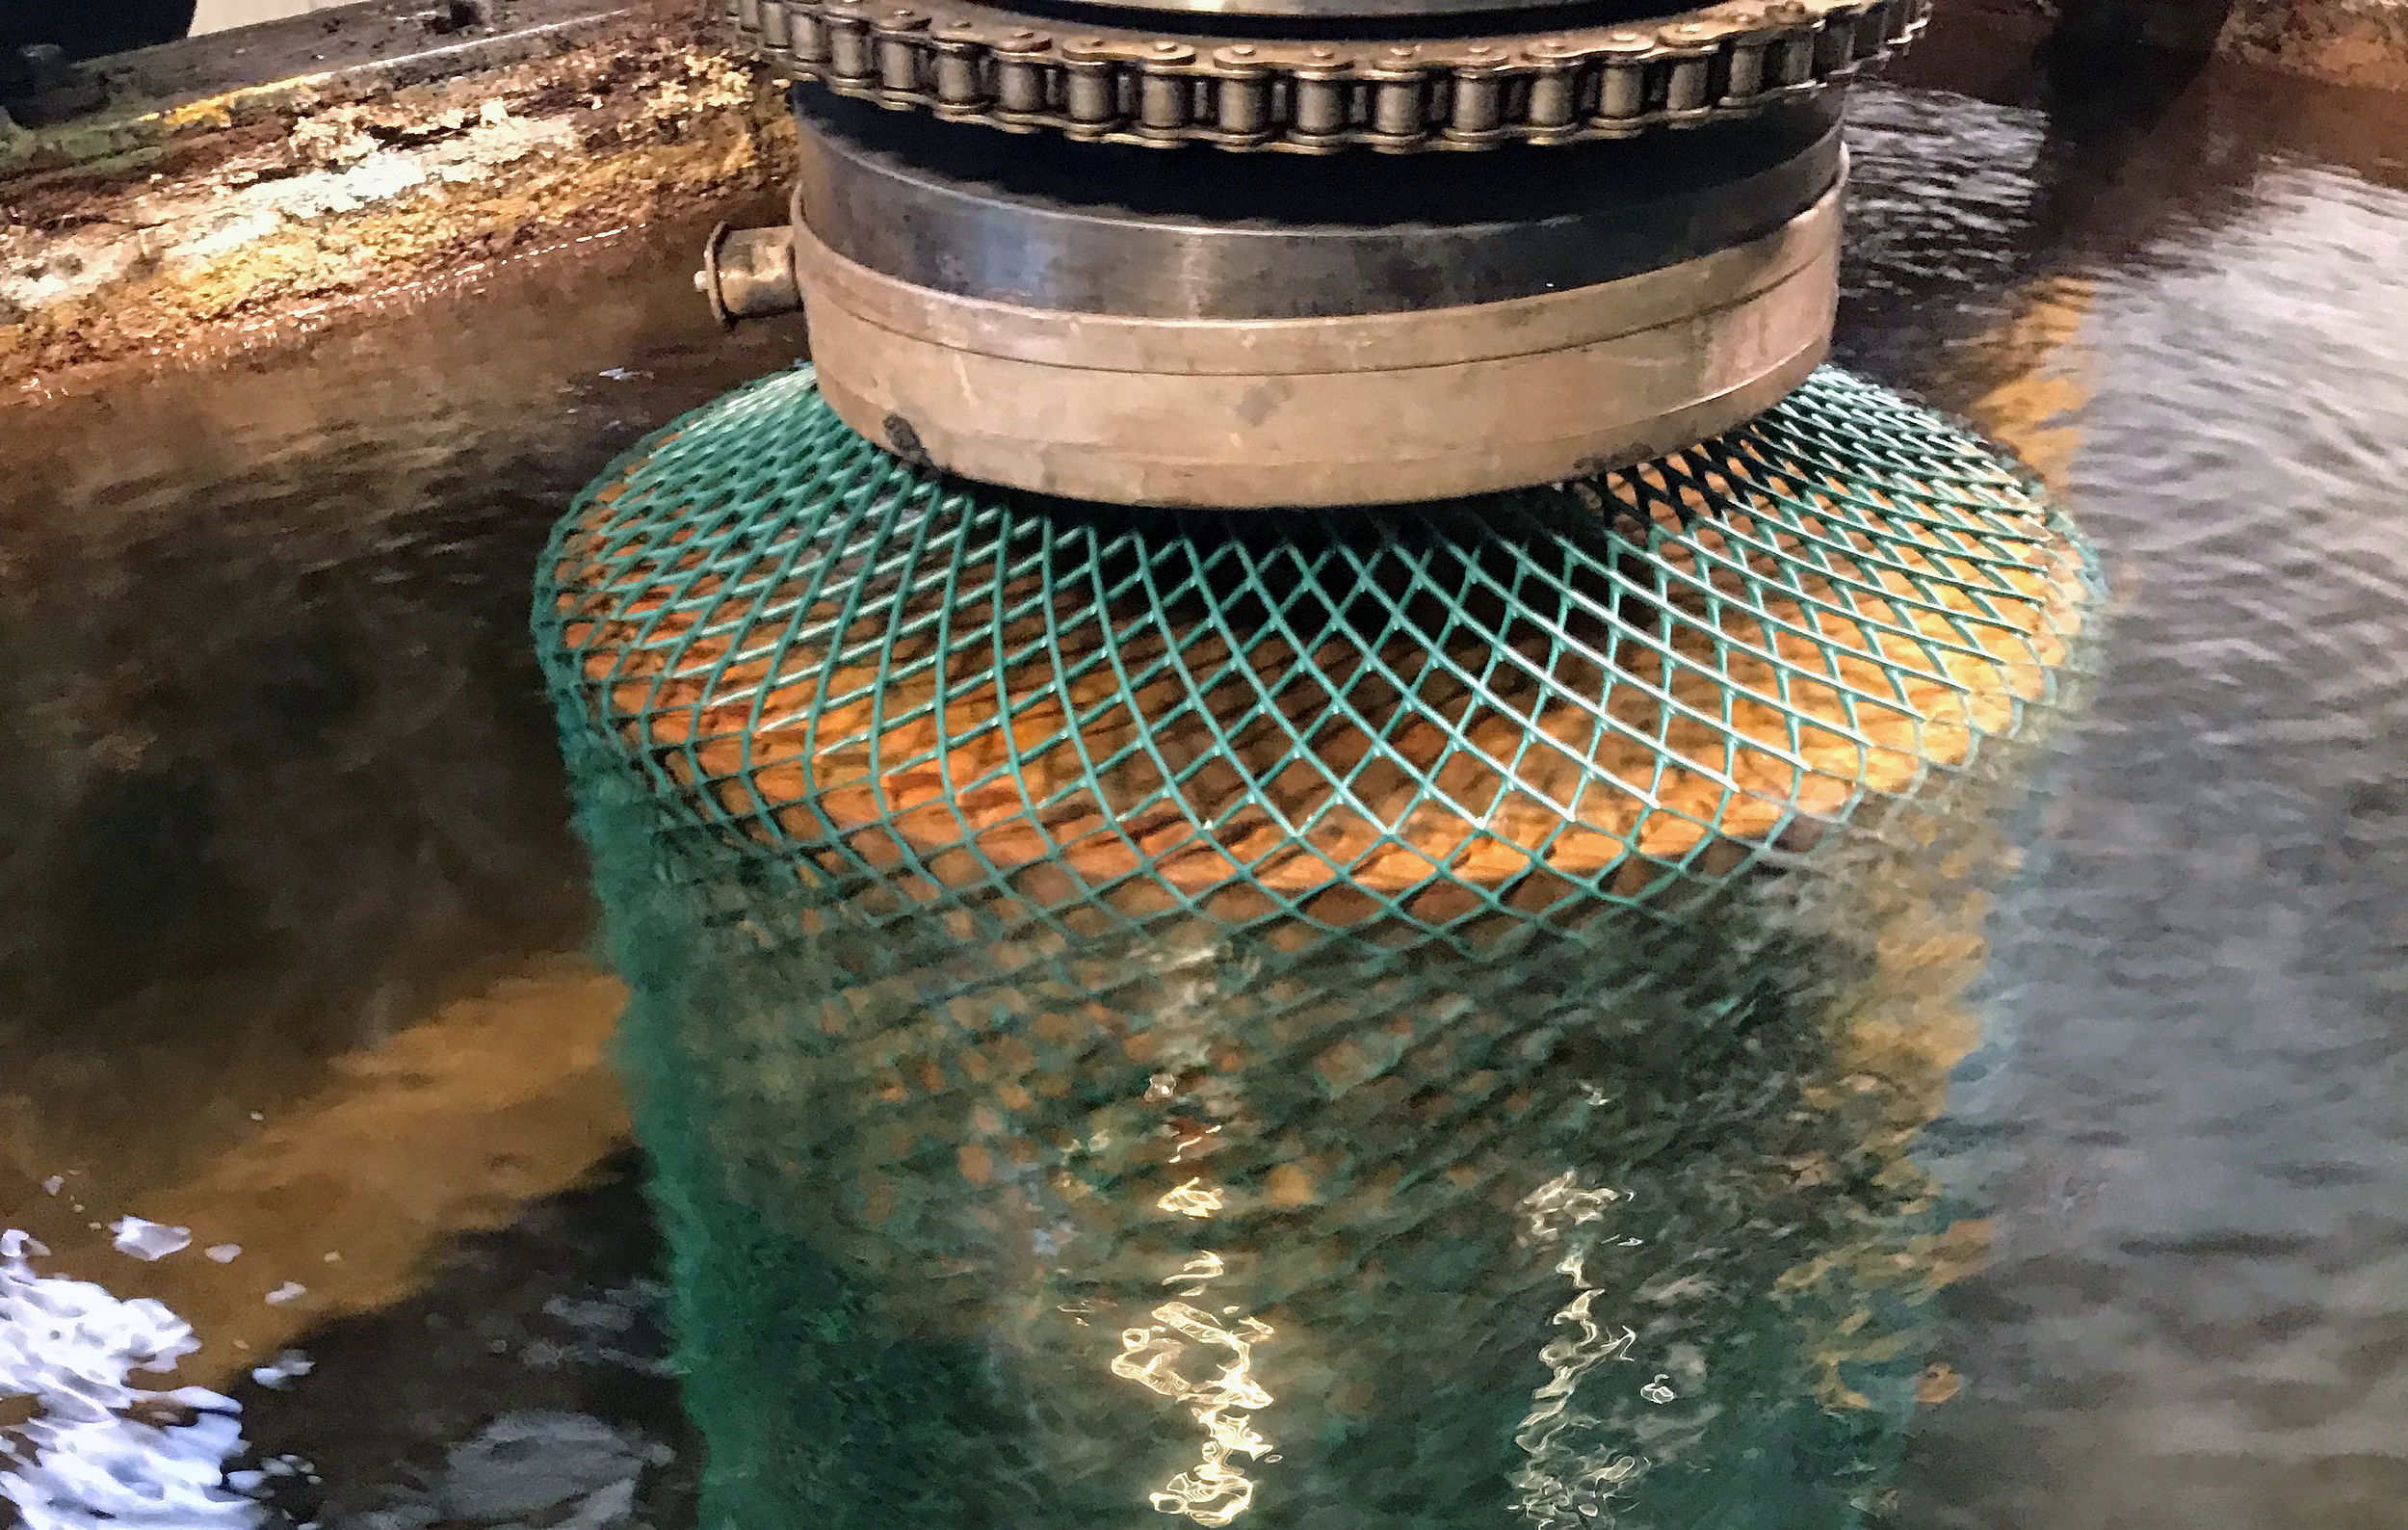 Net being put in water by machines